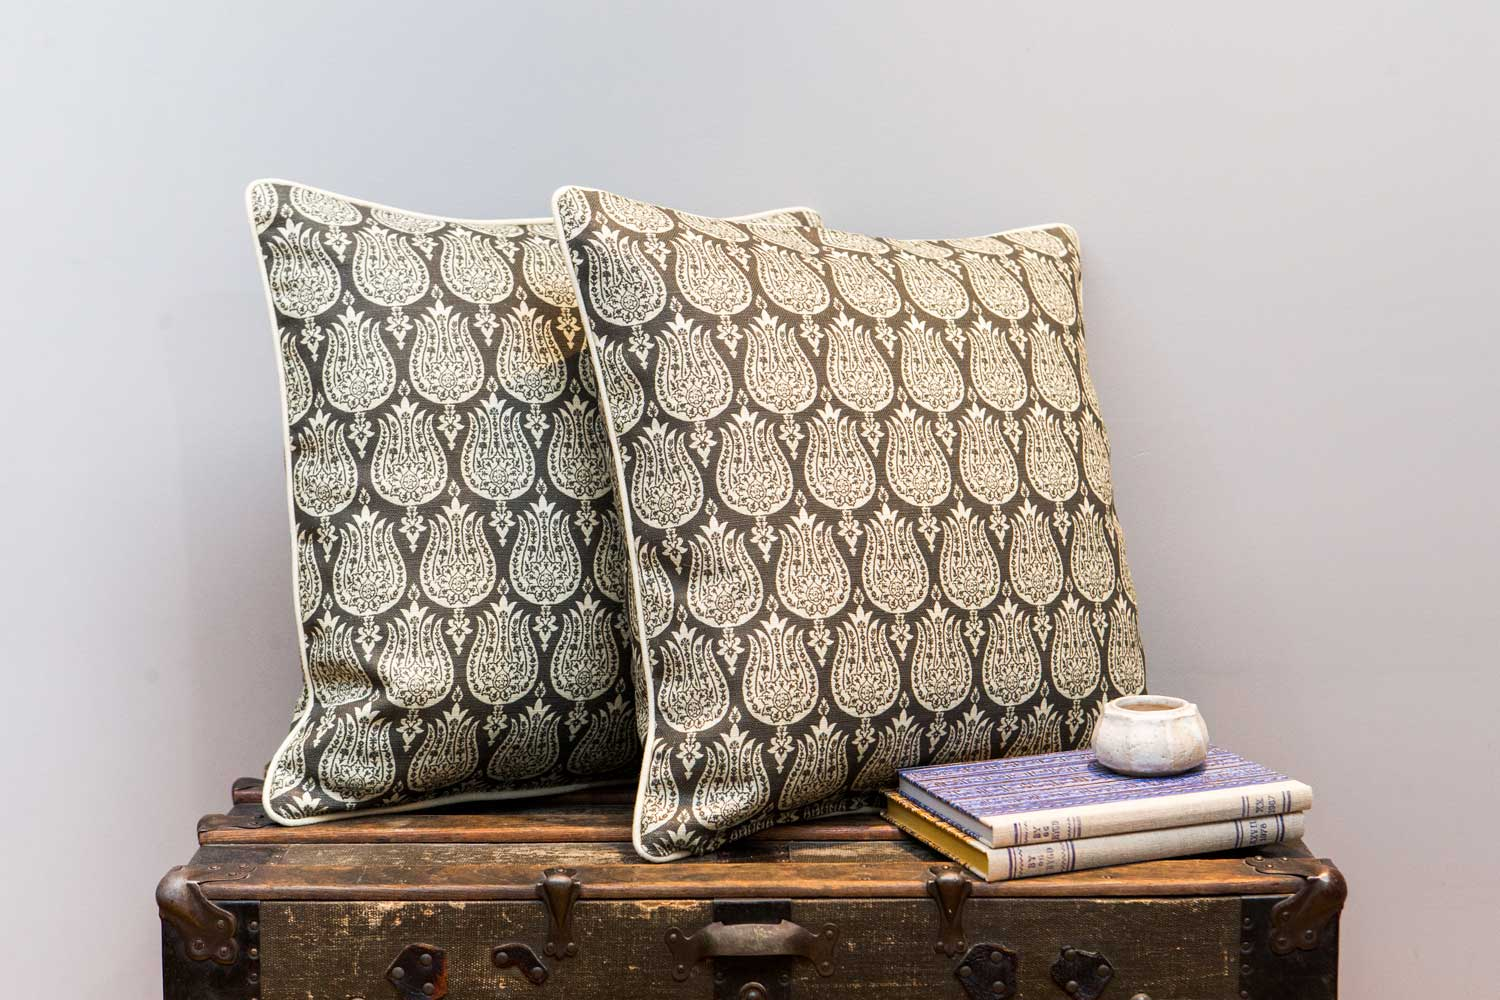 Abbot-Atlas-ottoman-tulip-stone-fabric-linen-printed-pillow-cushion-trunk.jpg